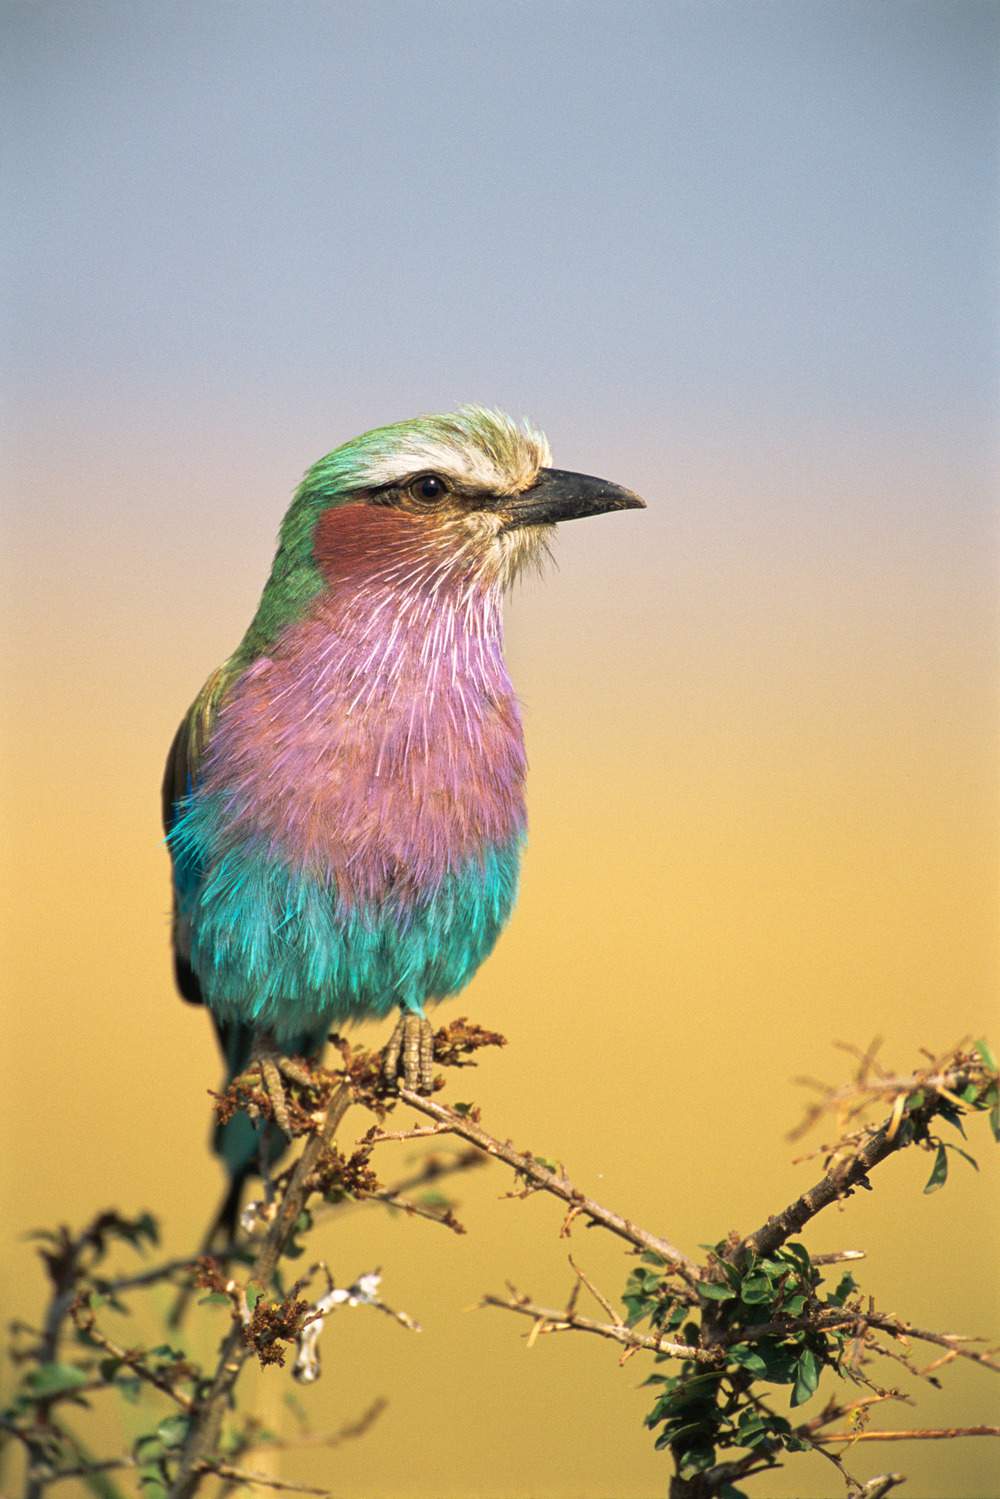 Lilac-breasted roller, Masai Mara National Reserve, Kenya